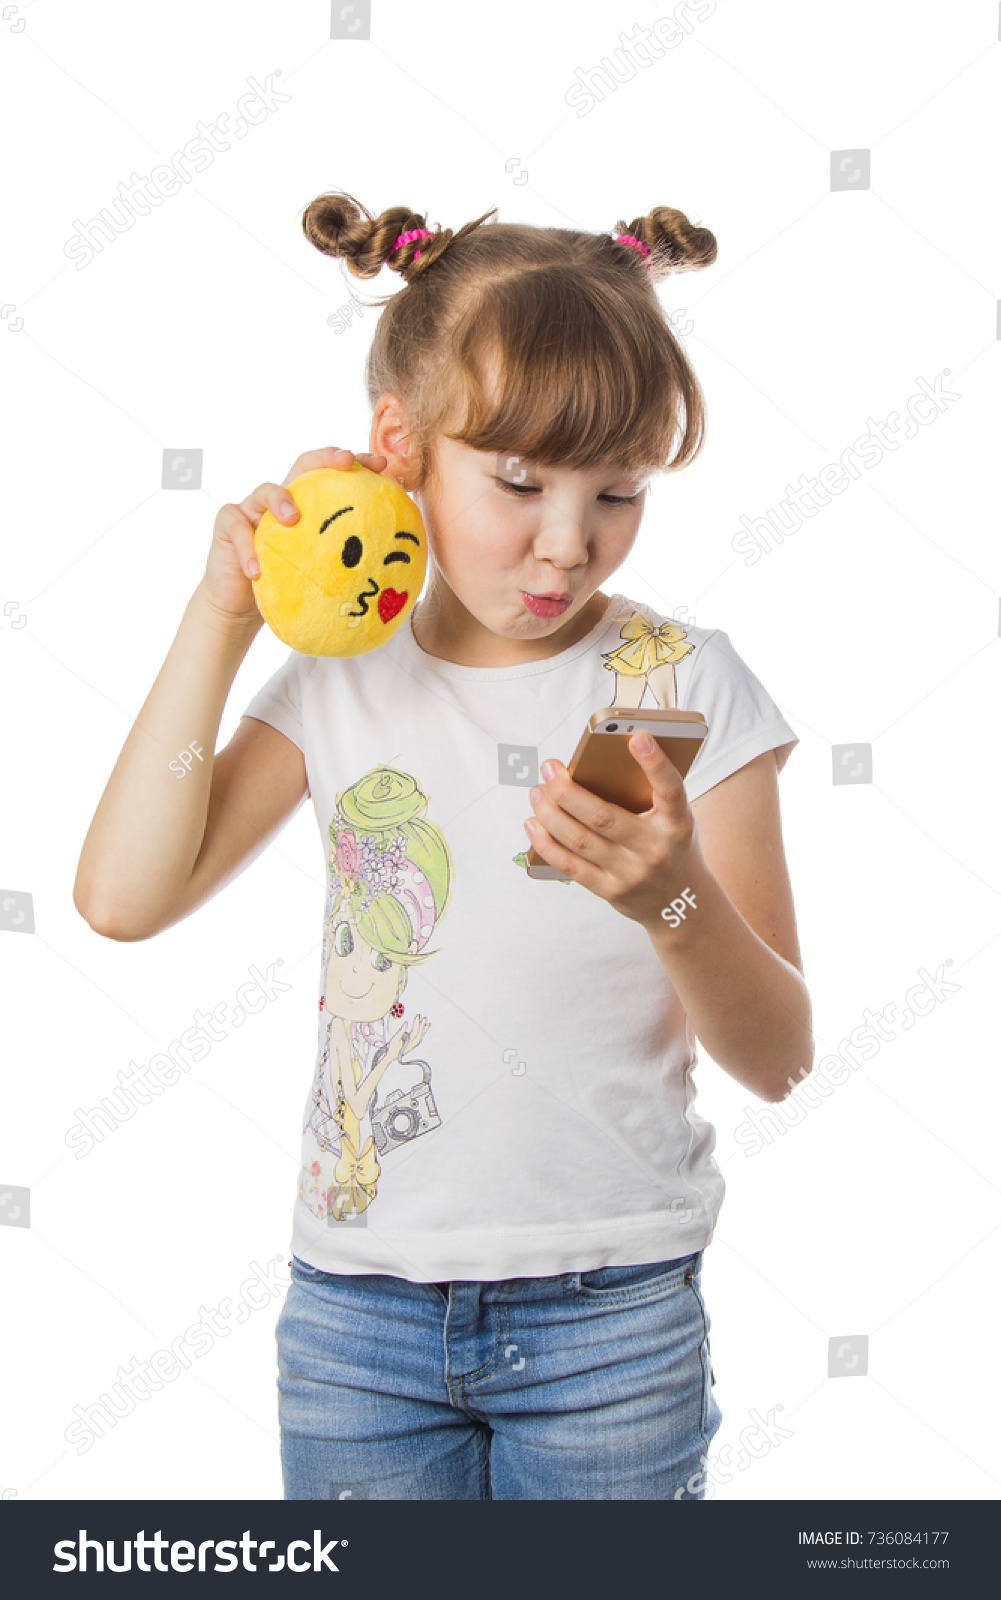 Young Girl Blond Hair Holding Emoji Stock Photo (Edit Now